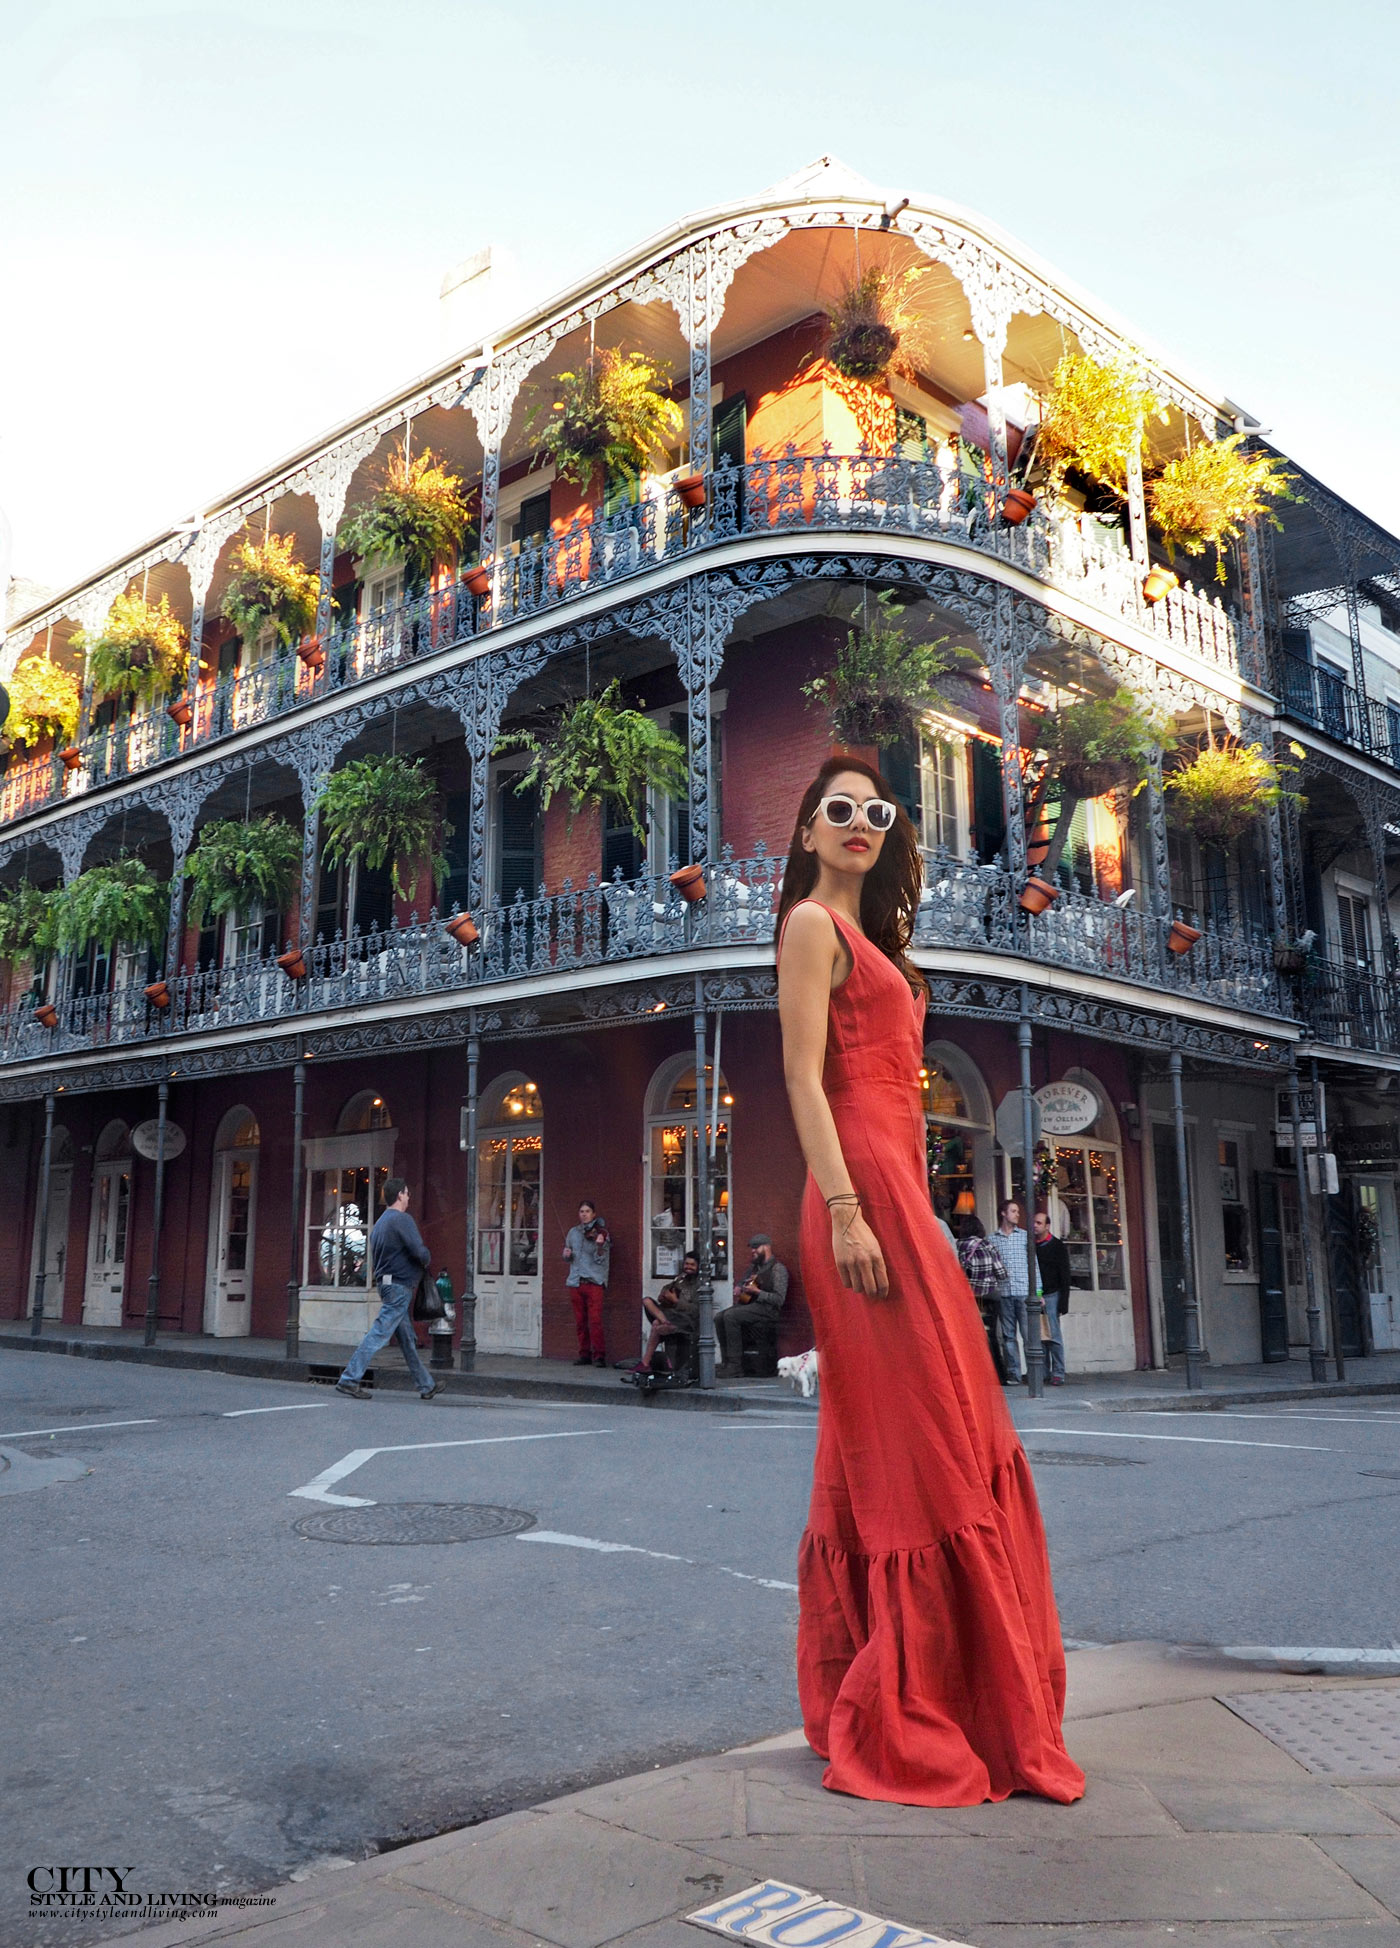 City style and living magazine The Editors Notebook style fashion blogger Shivana Maharaj New Orleans French Quarter Orange Dress Bourbon Street Architecture